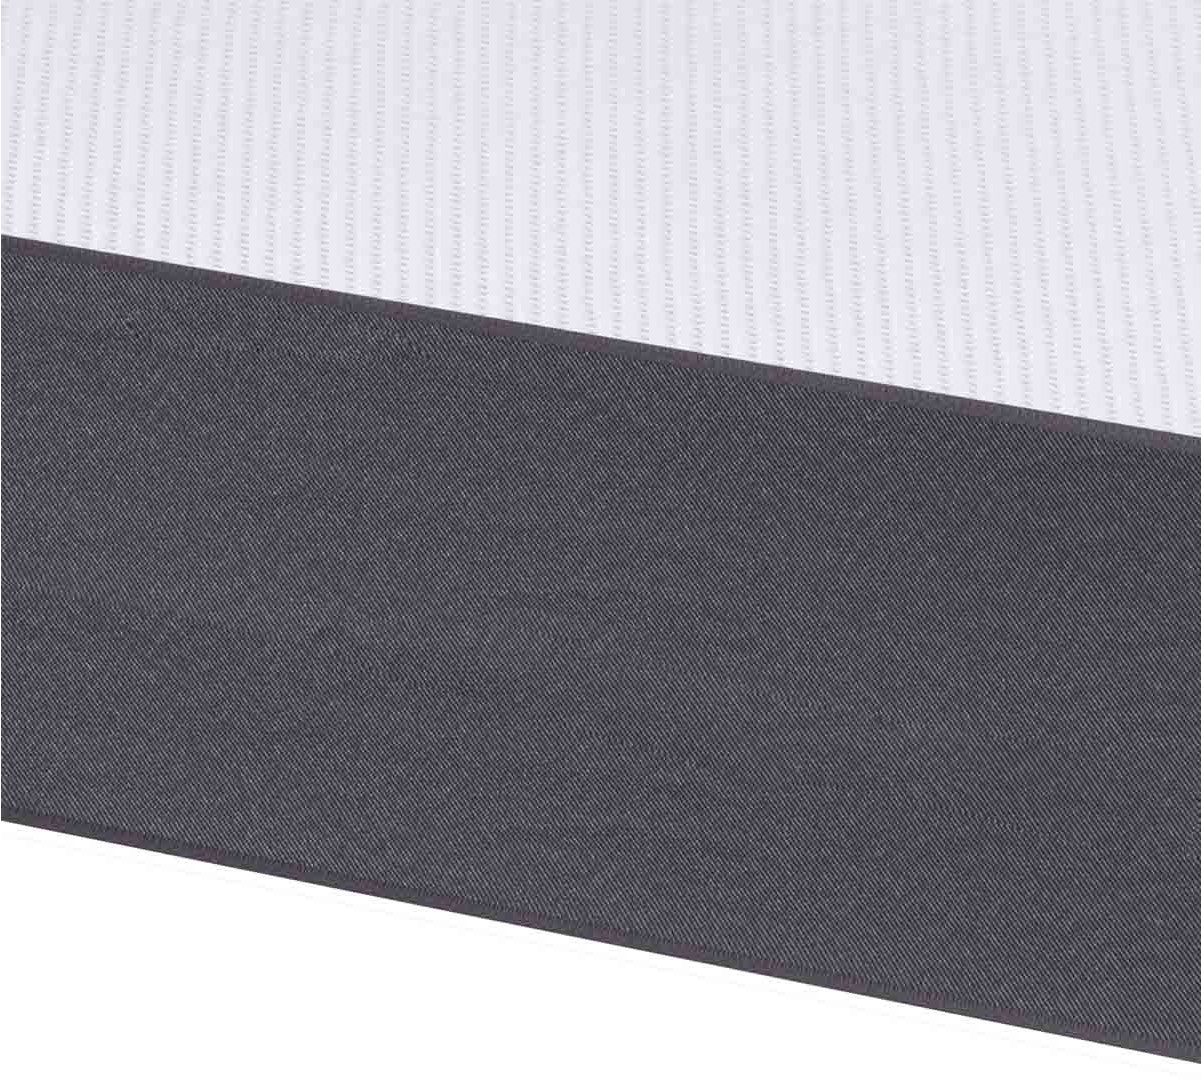 Types And Features Of Latex - Get Best Mattress |Graphite Foam